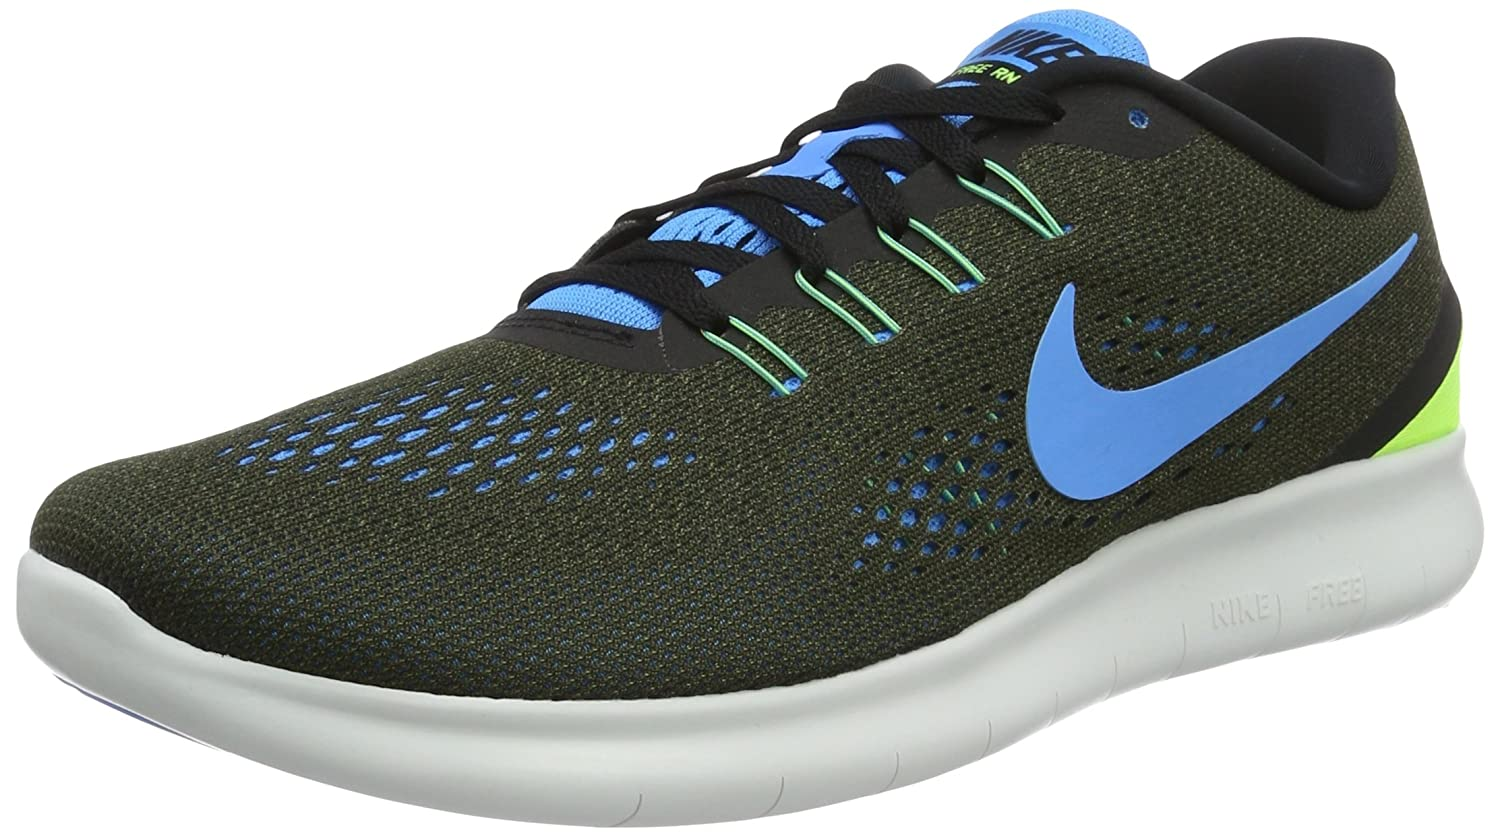 NIKE Men's Free RN Running Shoe B01CITLGDA 9.5 D(M) US|Khaki / Blue